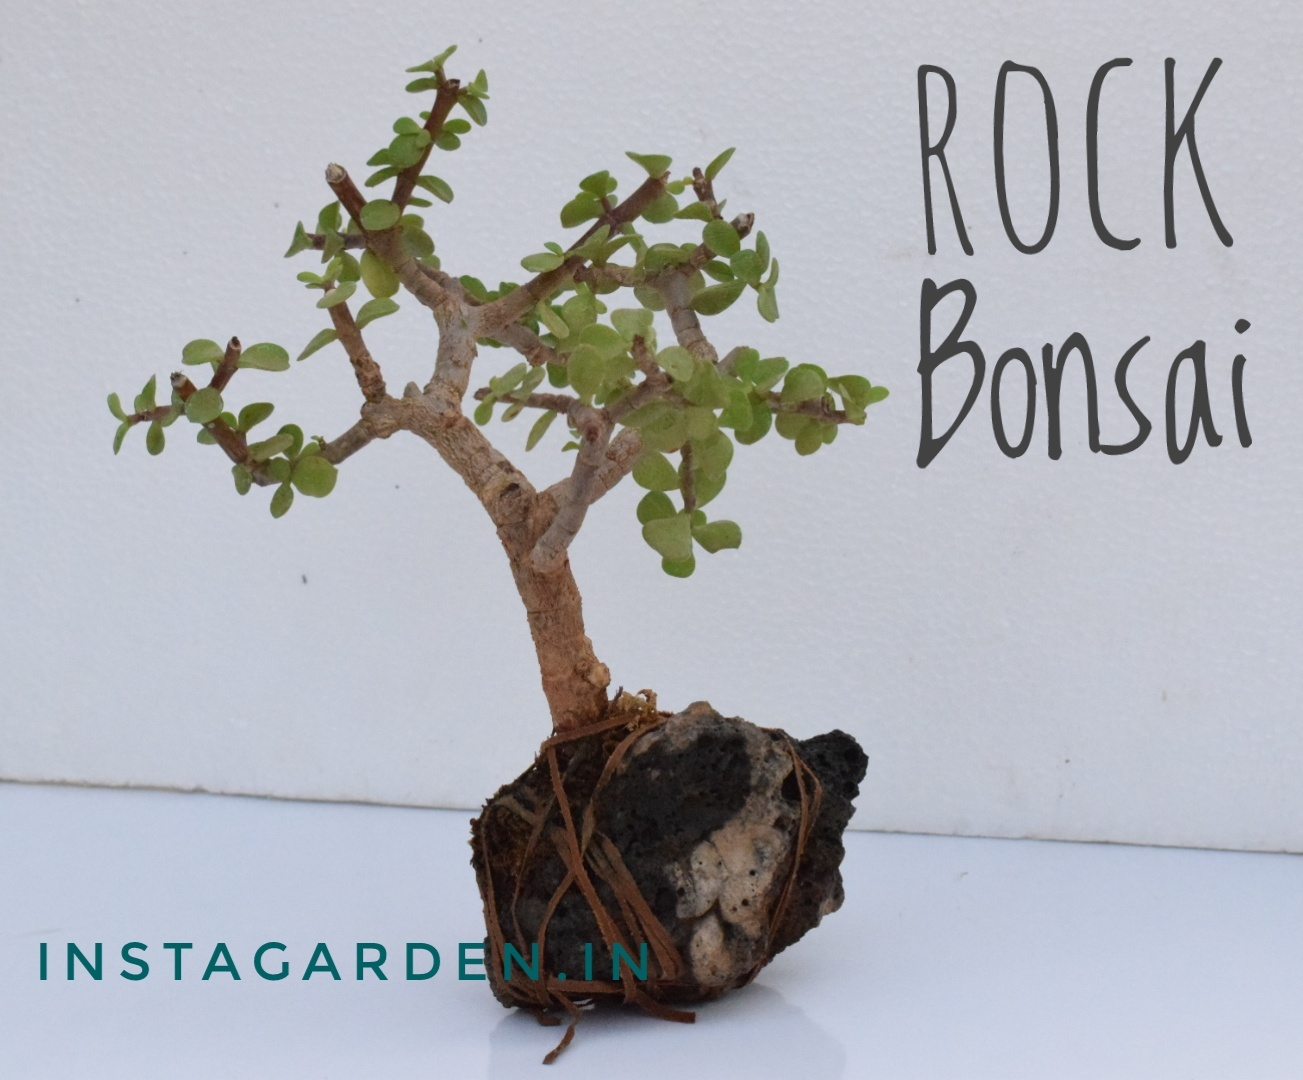 Where can I buy bonsai plants and pots in Hyderabad? - Quora on gardens in srinagar, gardens in tokyo, gardens in india, gardens in lahore, gardens in bangalore, gardens in nairobi, gardens in kashmir, gardens in seoul, gardens in beijing, gardens in bangkok,